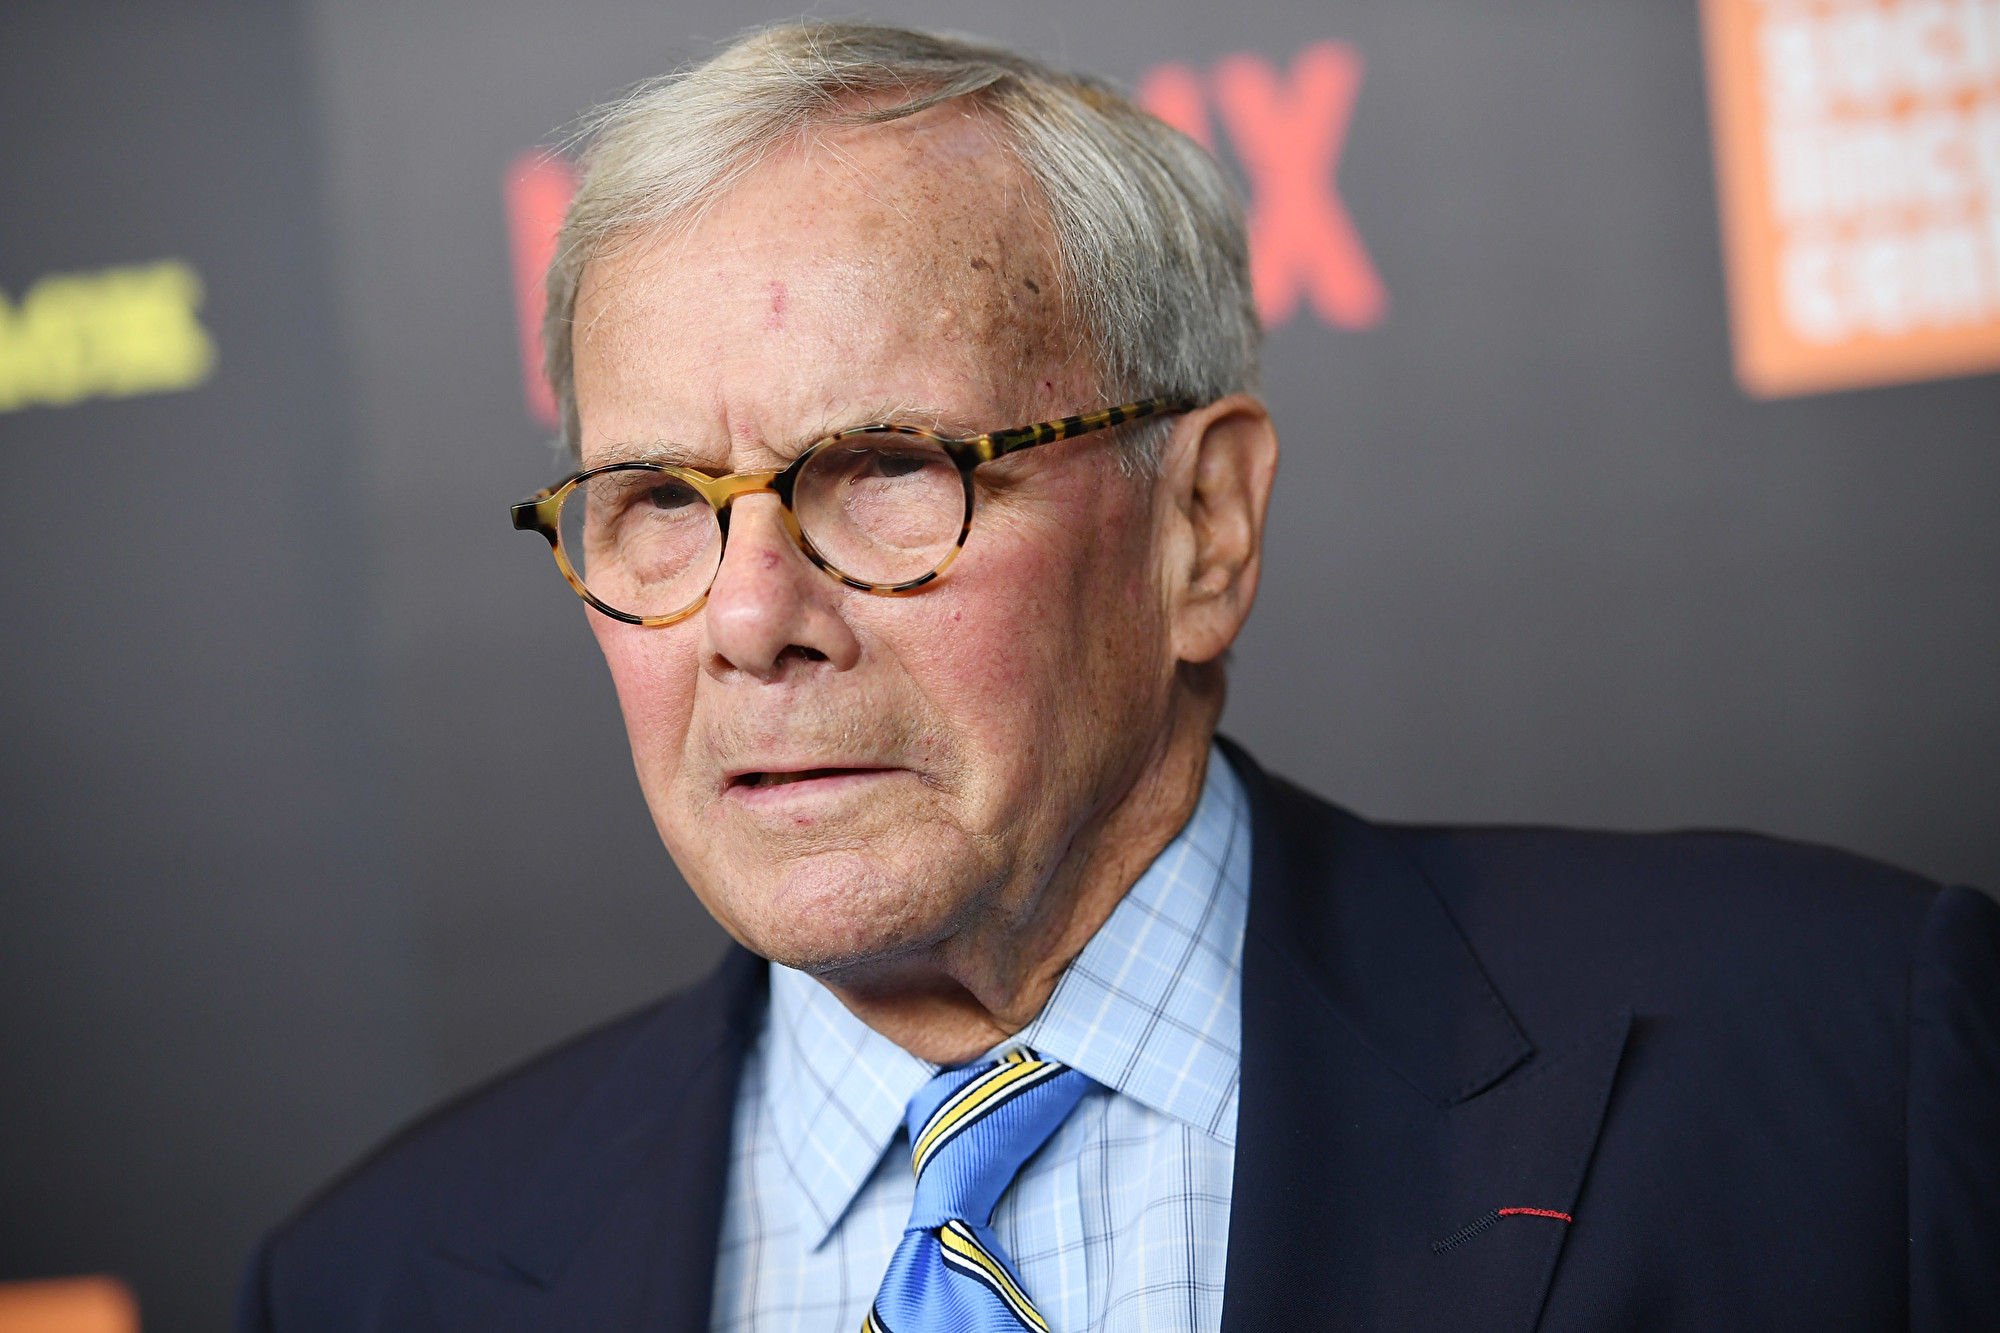 圖為前NBC主持人湯姆·布羅考(Tom Brokaw)。(Dimitrios Kambouris/Getty Images)